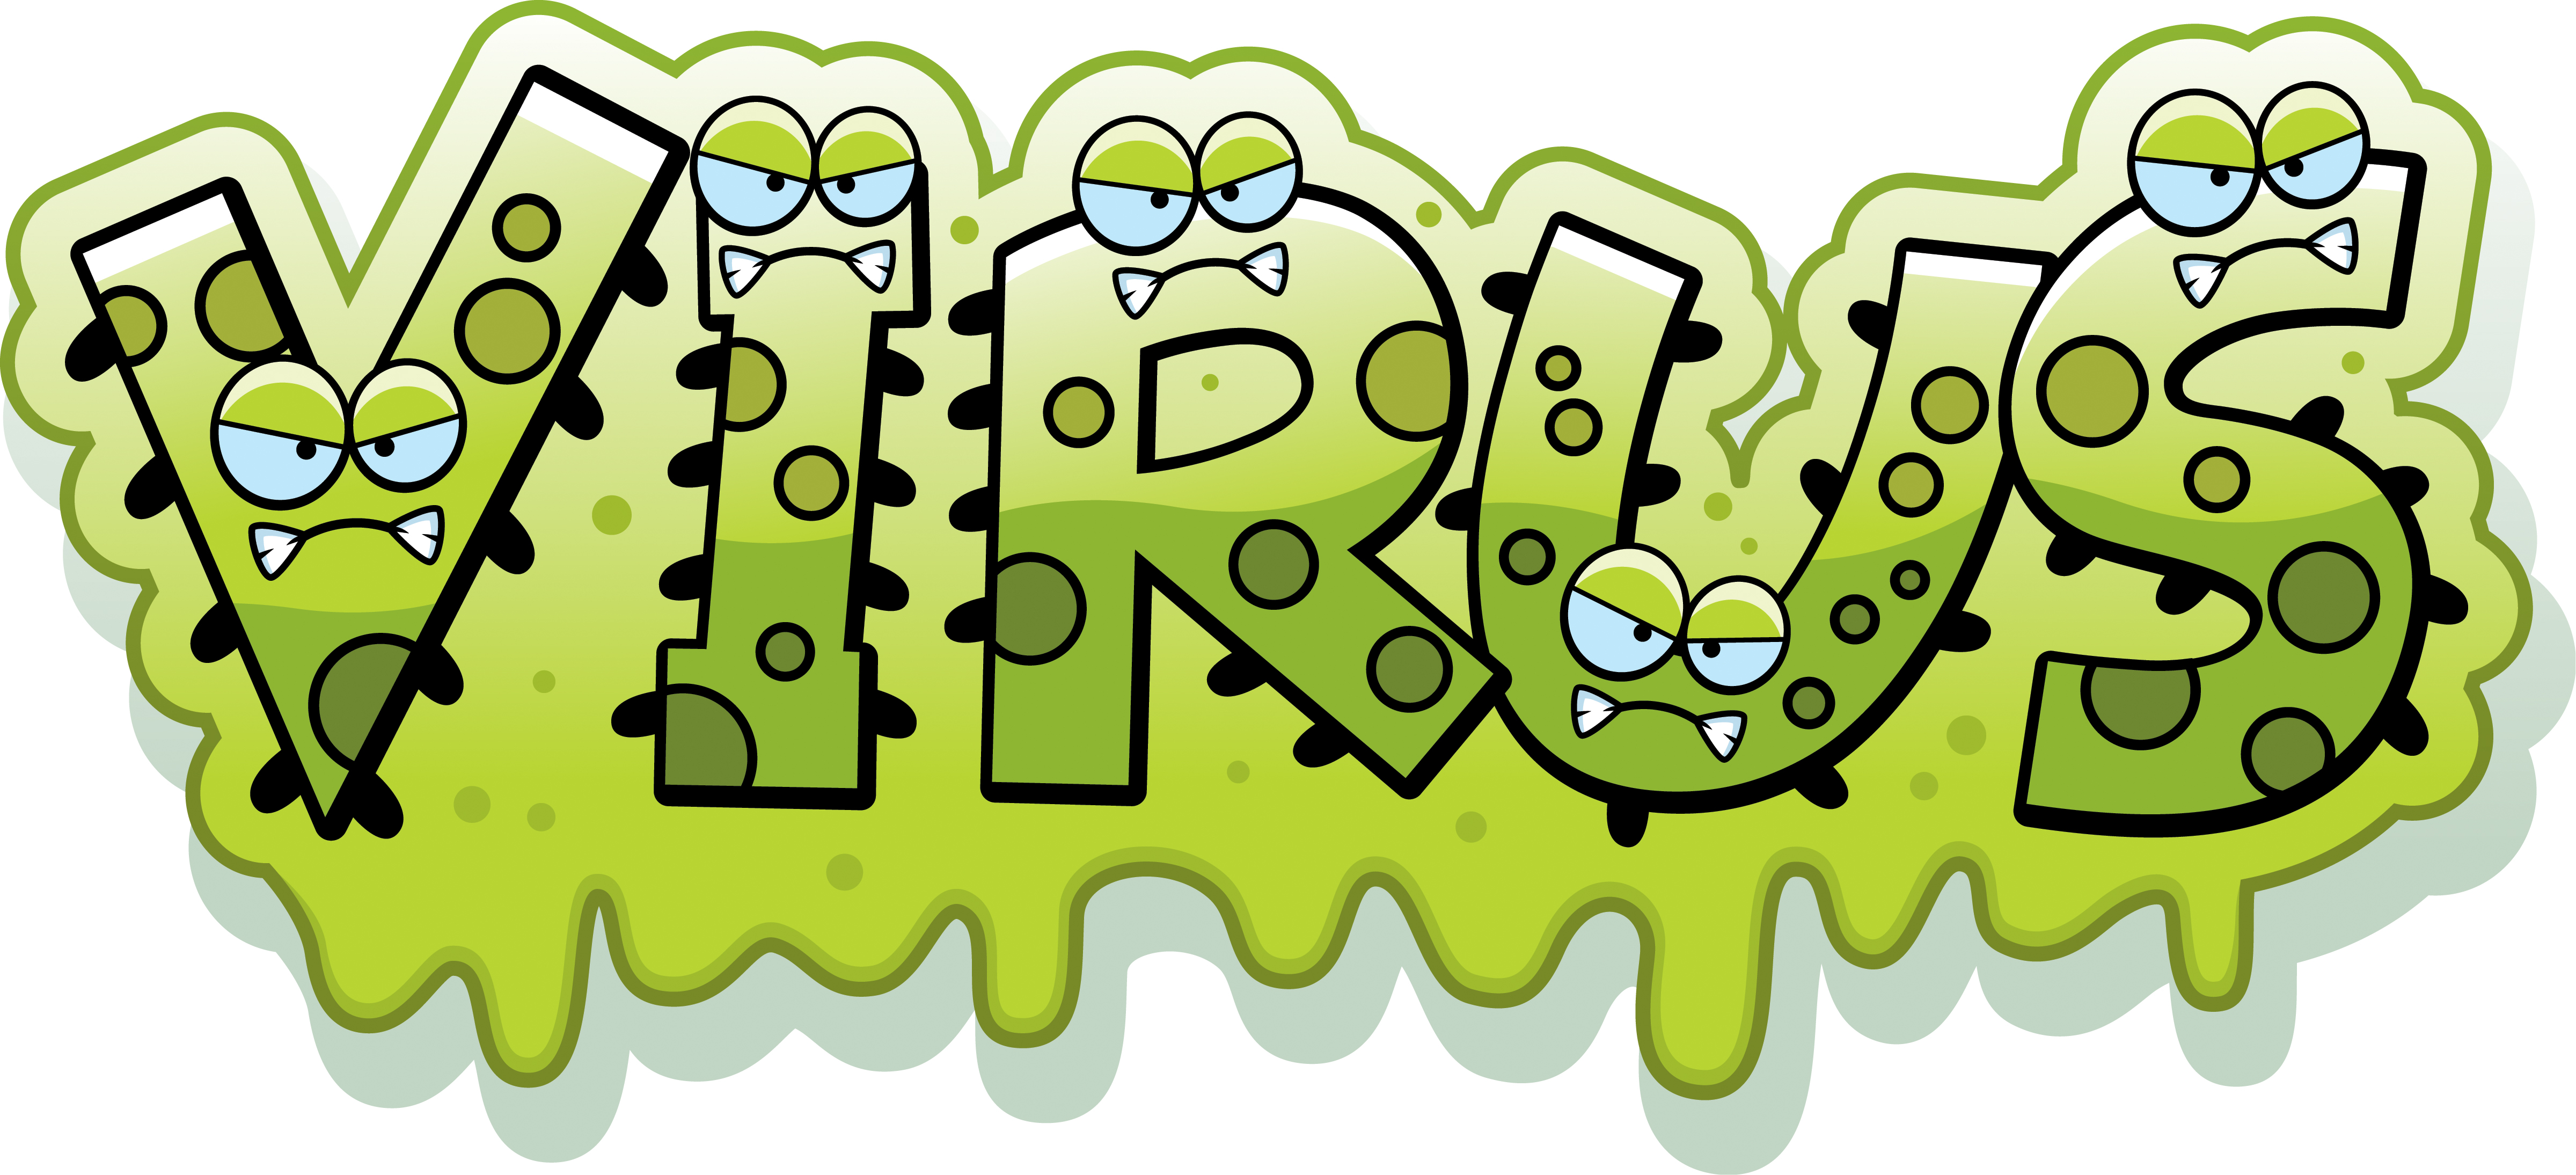 Four common ways infections. Bacteria clipart viral infection